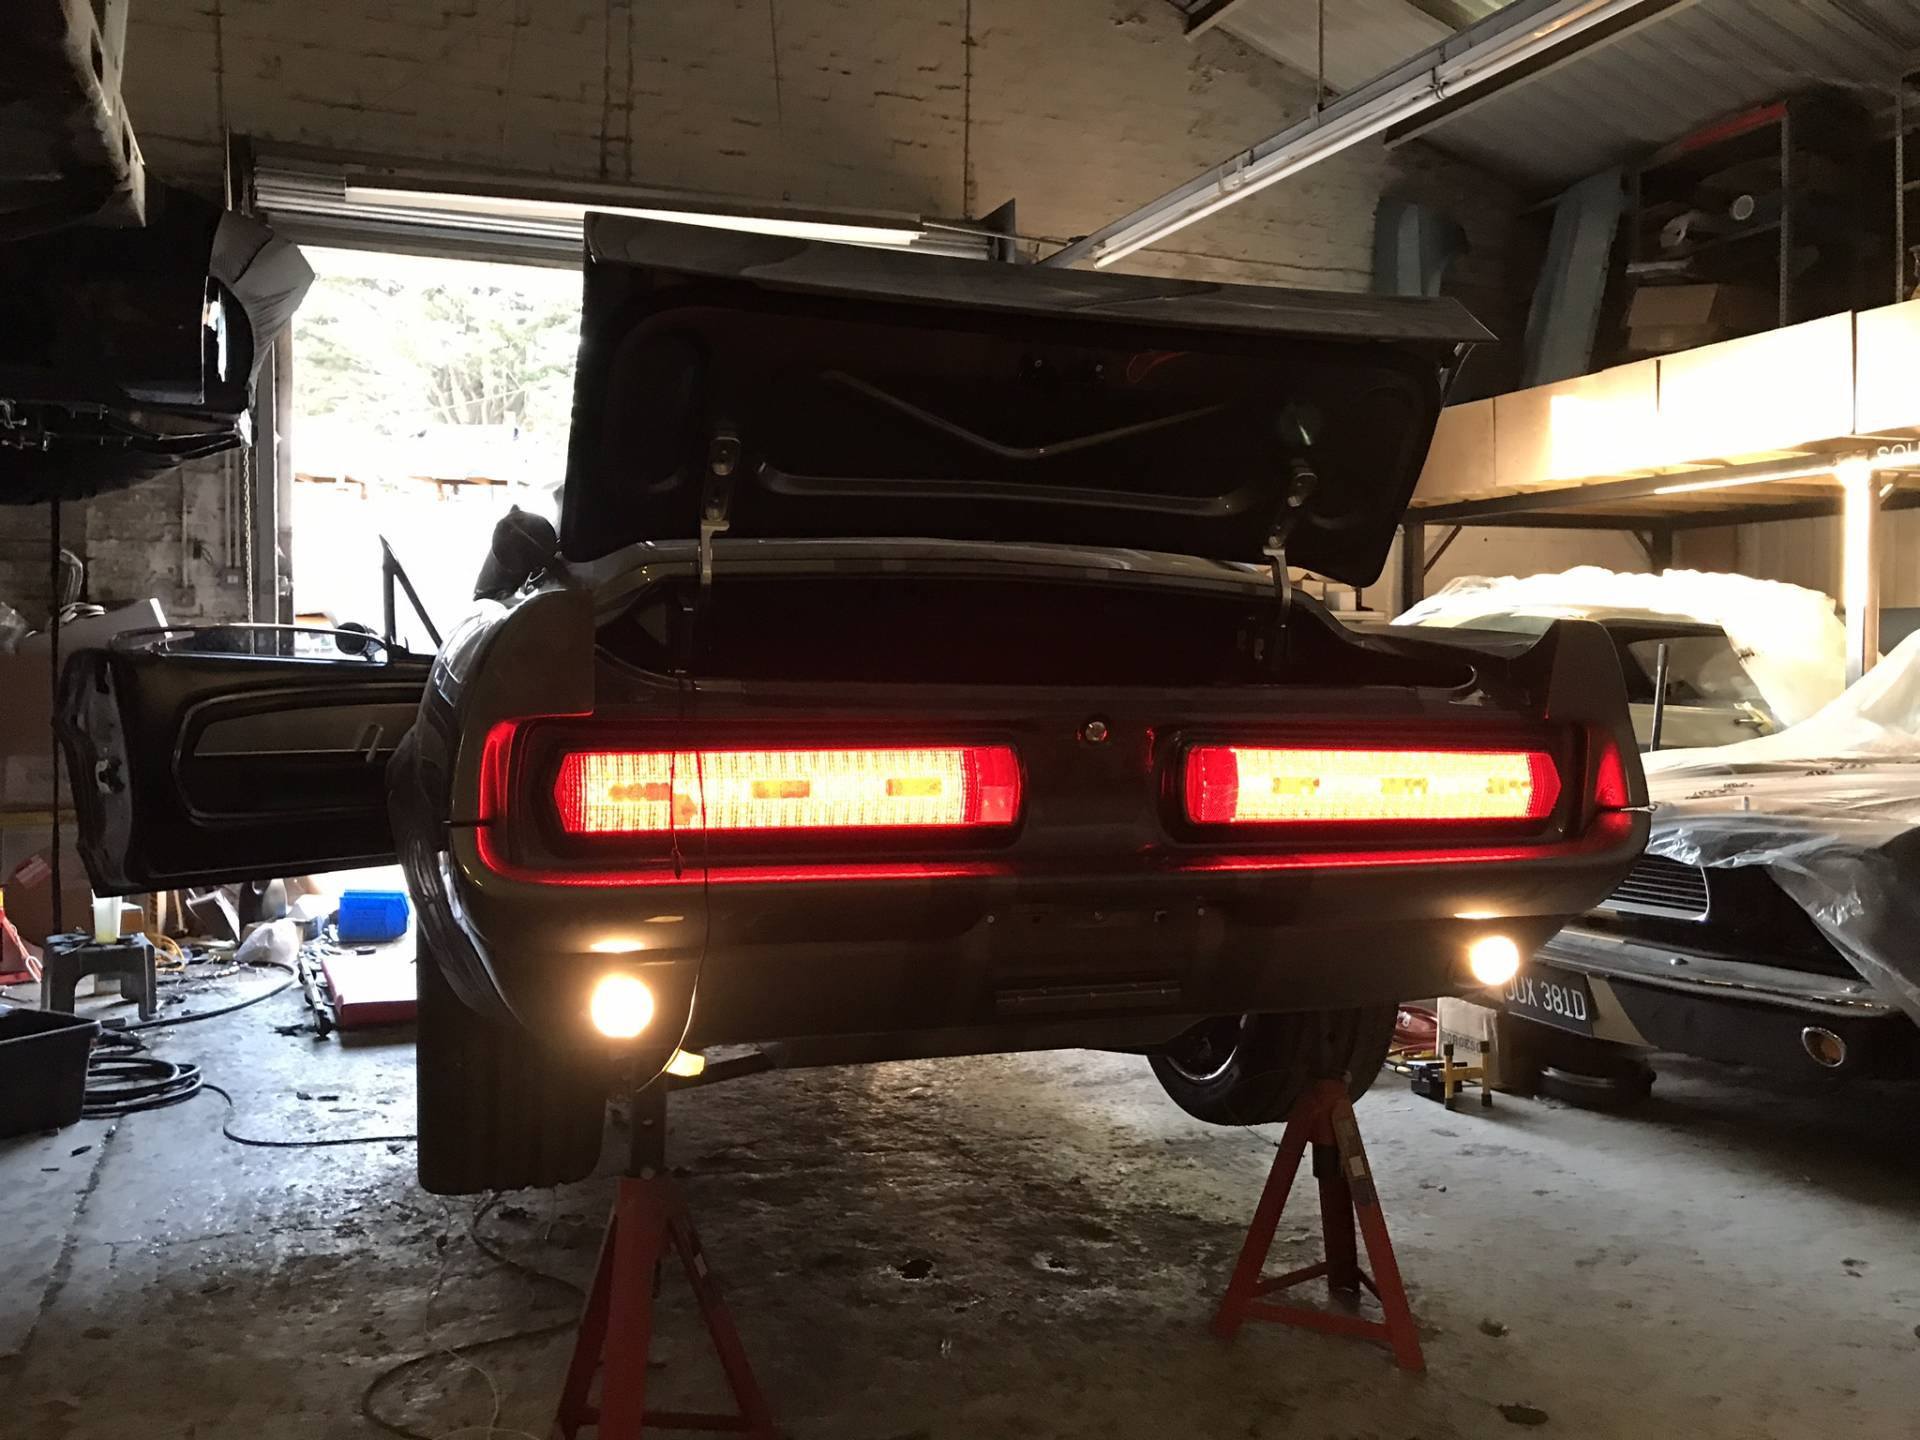 Ford Shelby GT 500 - LED taillights,